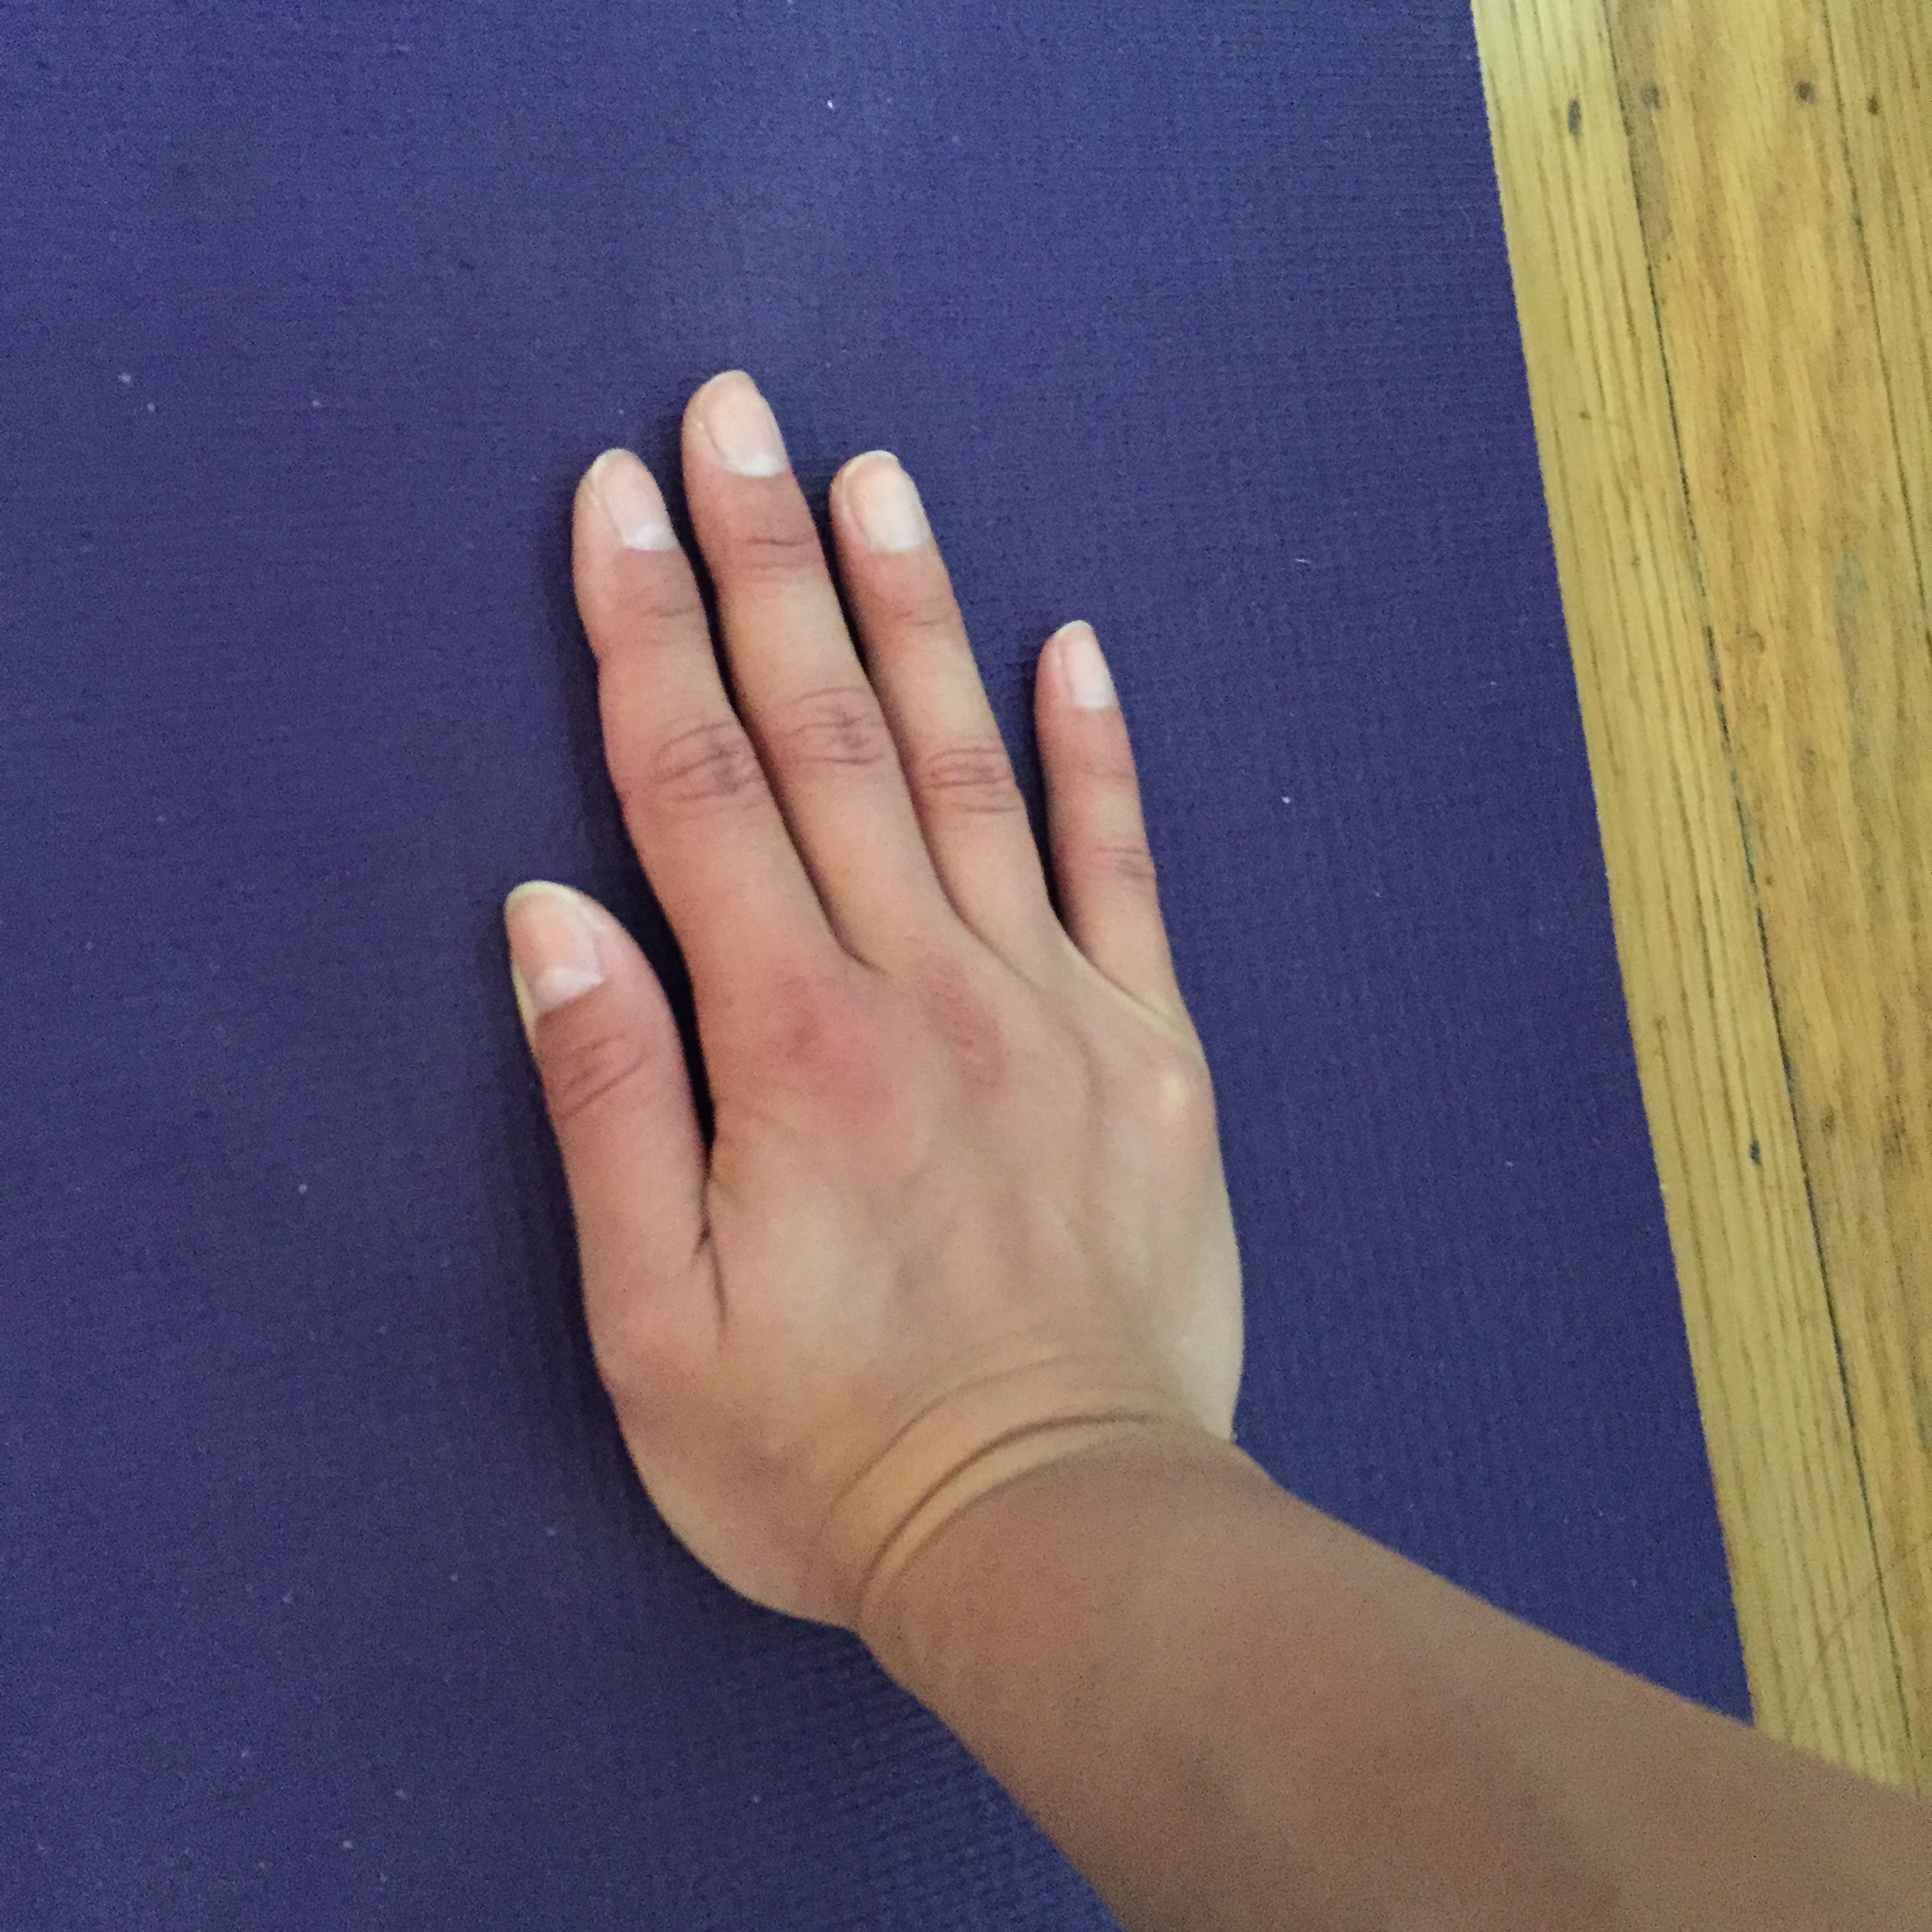 Wrong option #1: The fingers are too tightly together and not spread out to maximize the surface area of your hands grounding into the mat.